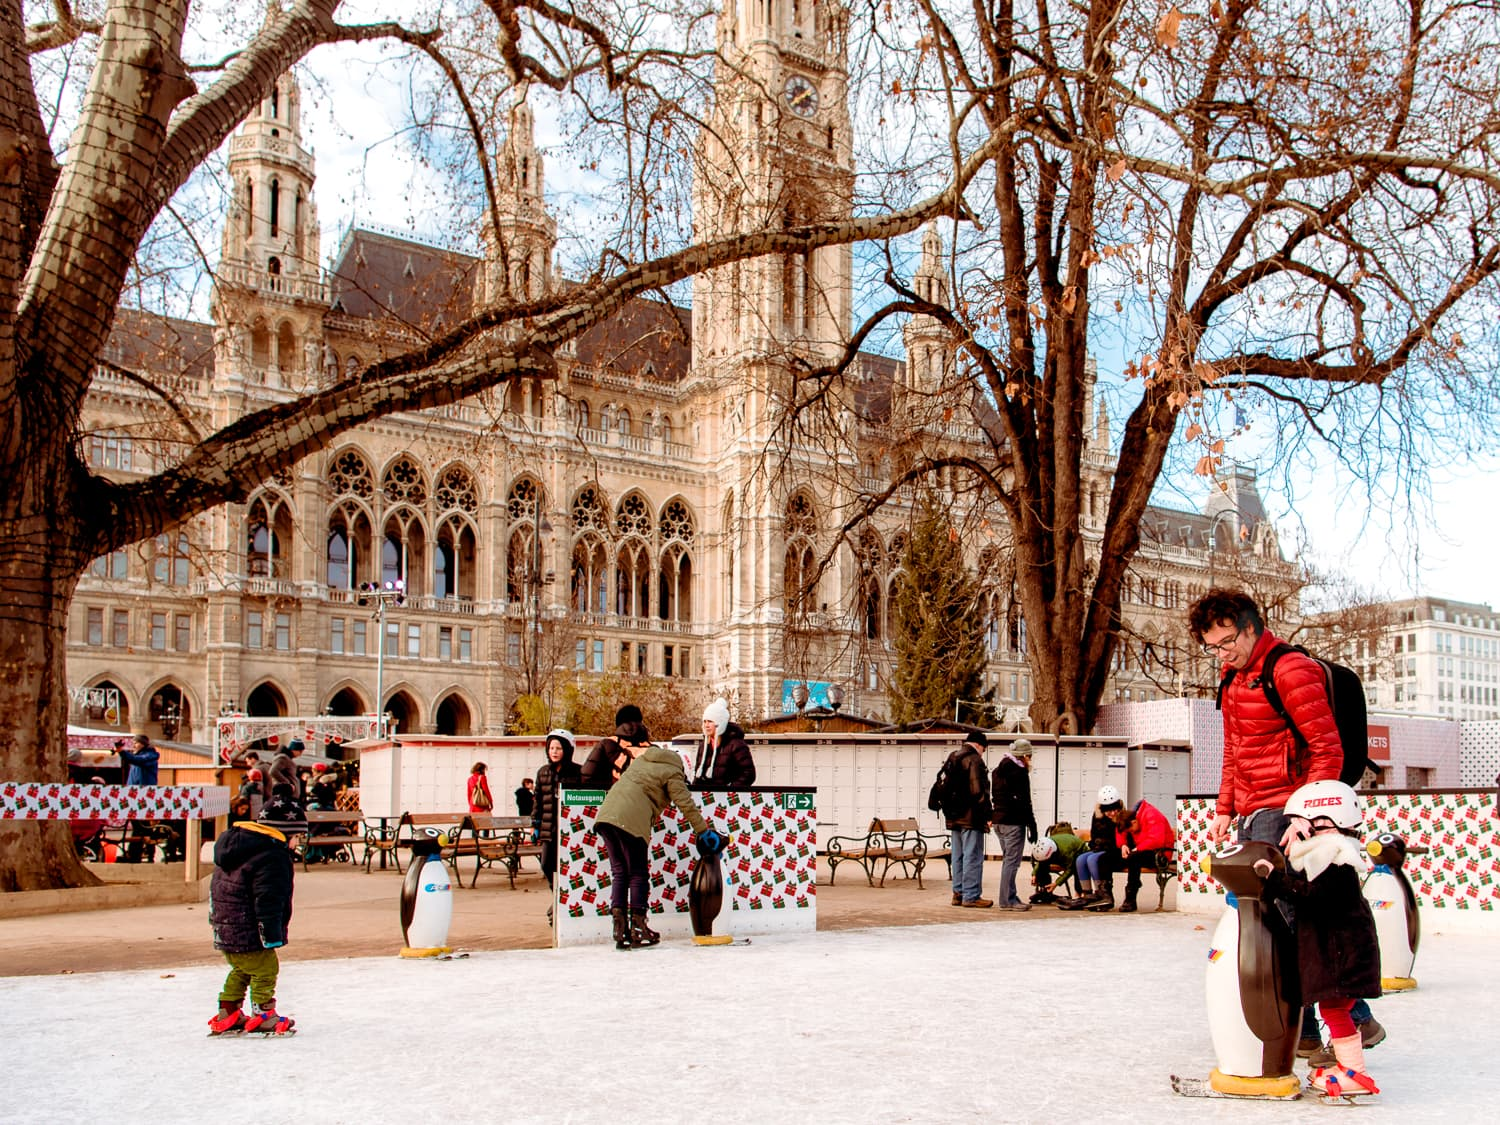 Ice skating in Vienna, Austria at Wiener Eistraum in front of Rathaus.